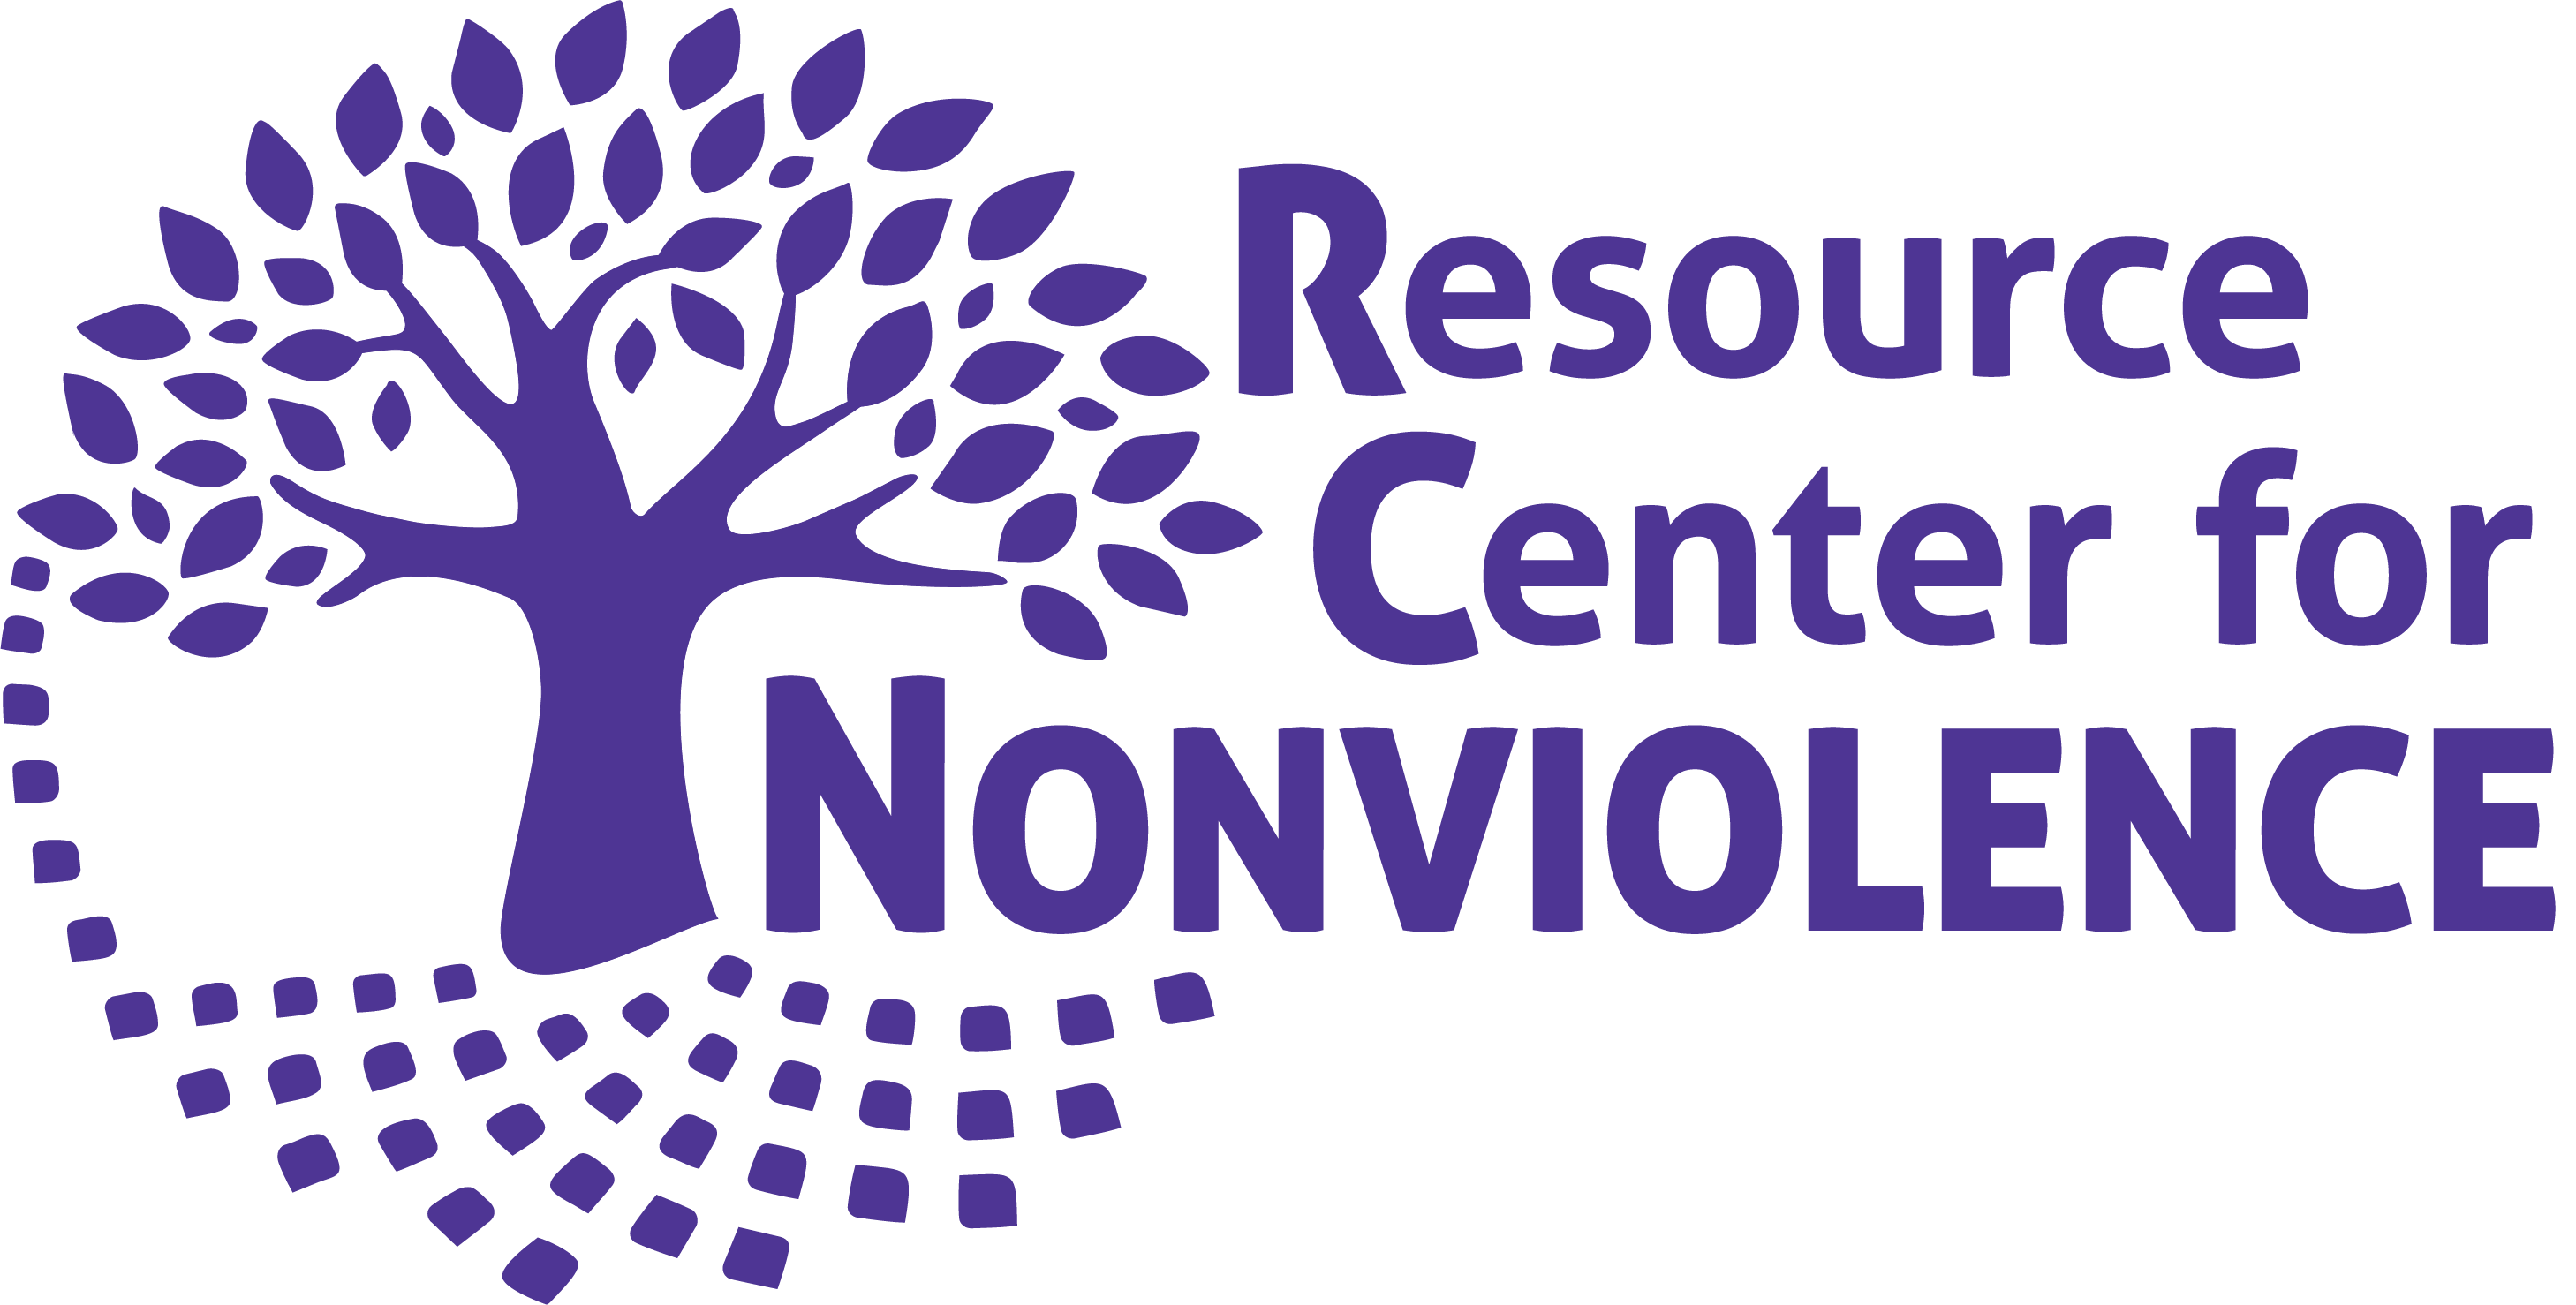 Resource Center for Nonviolence Graphic of a tree before text